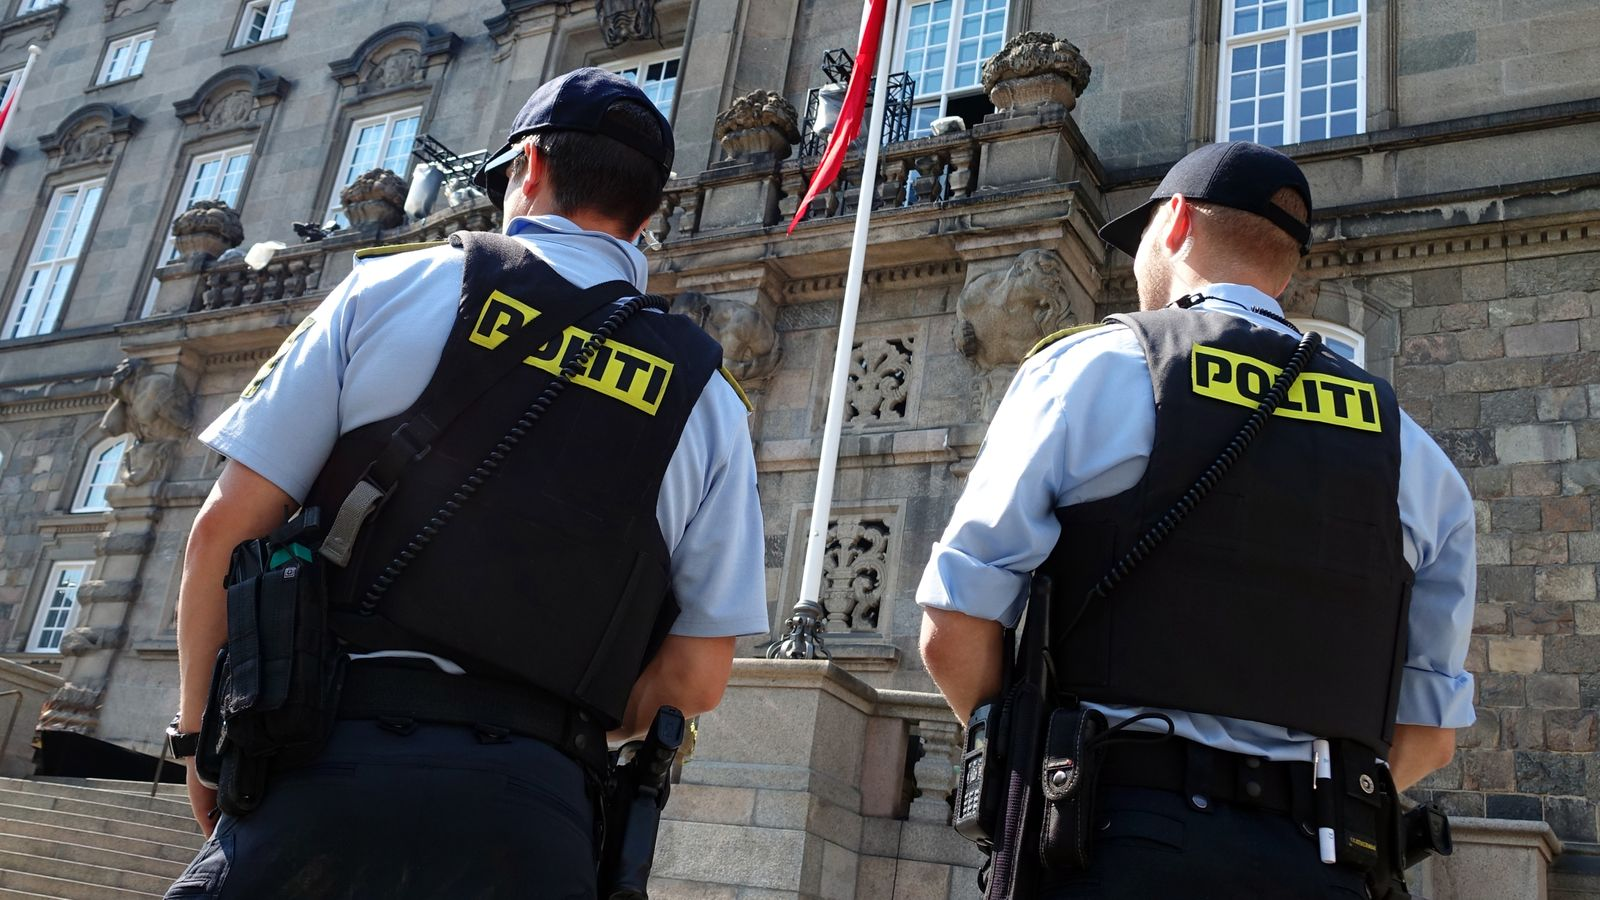 Arrests in Denmark over suspected Islamist terror plot - EpicNews